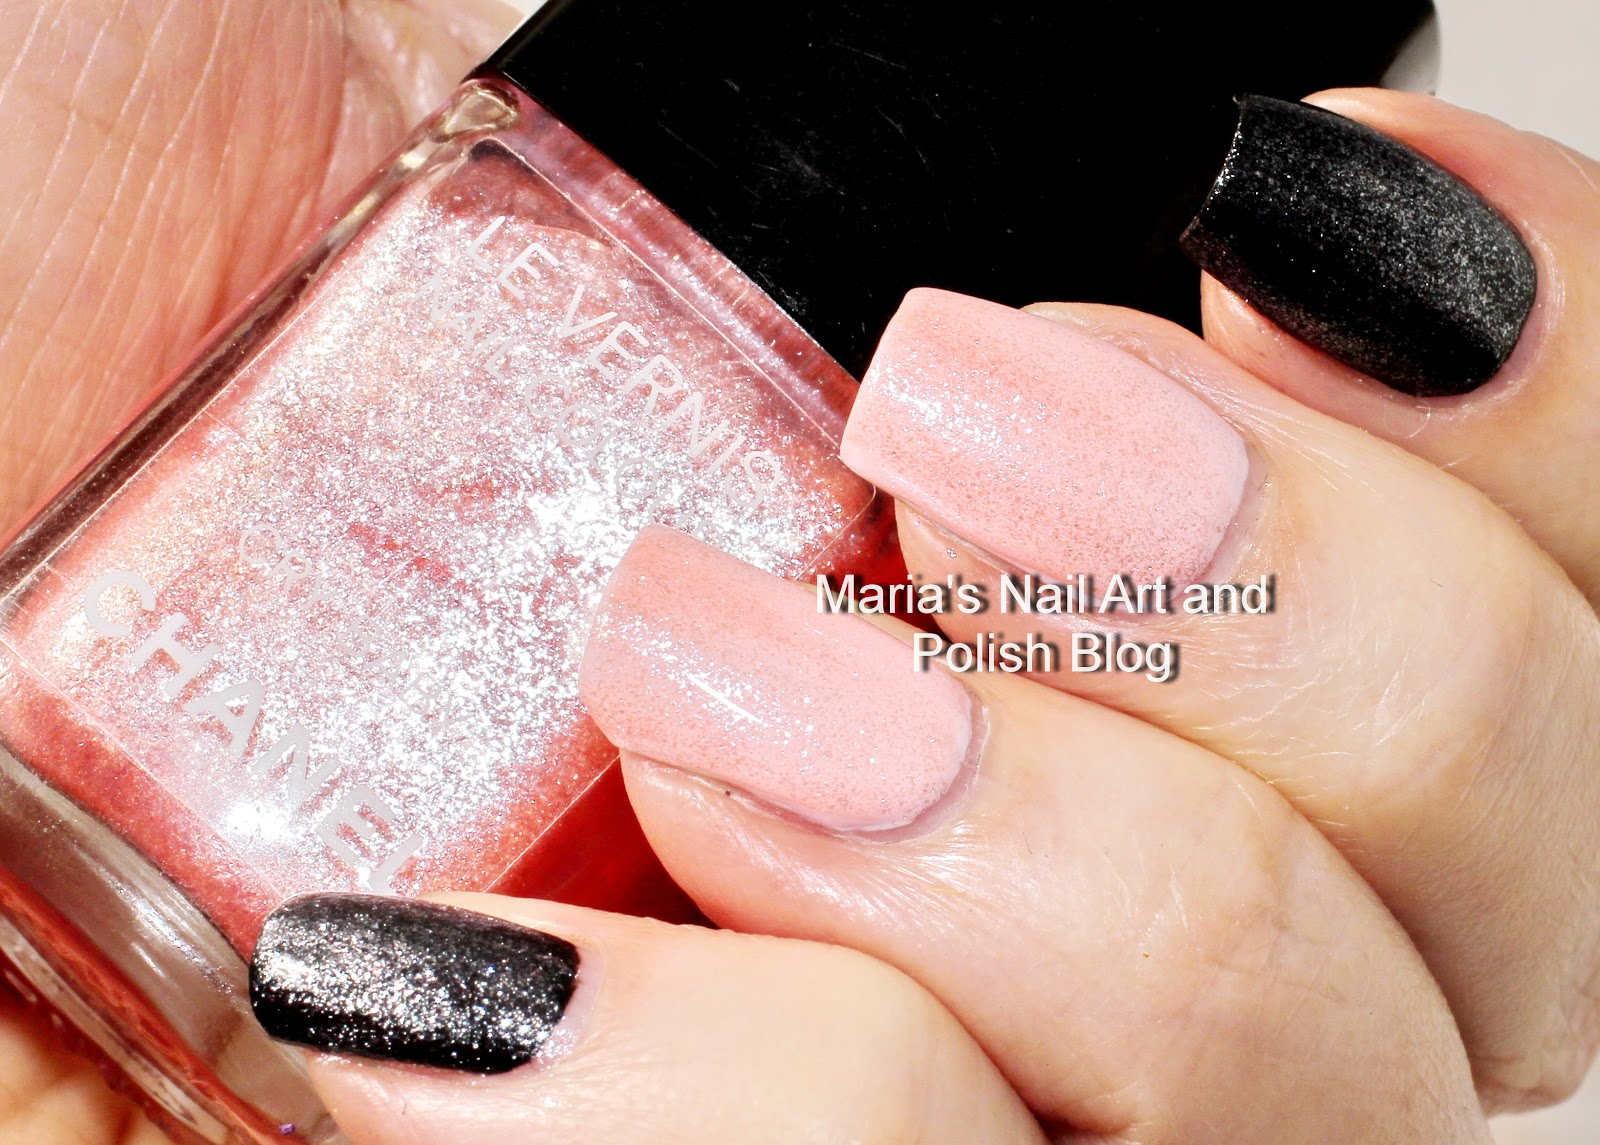 Marias Nail Art and Polish Blog: Chanel Cry Baby, Color of the Year ...